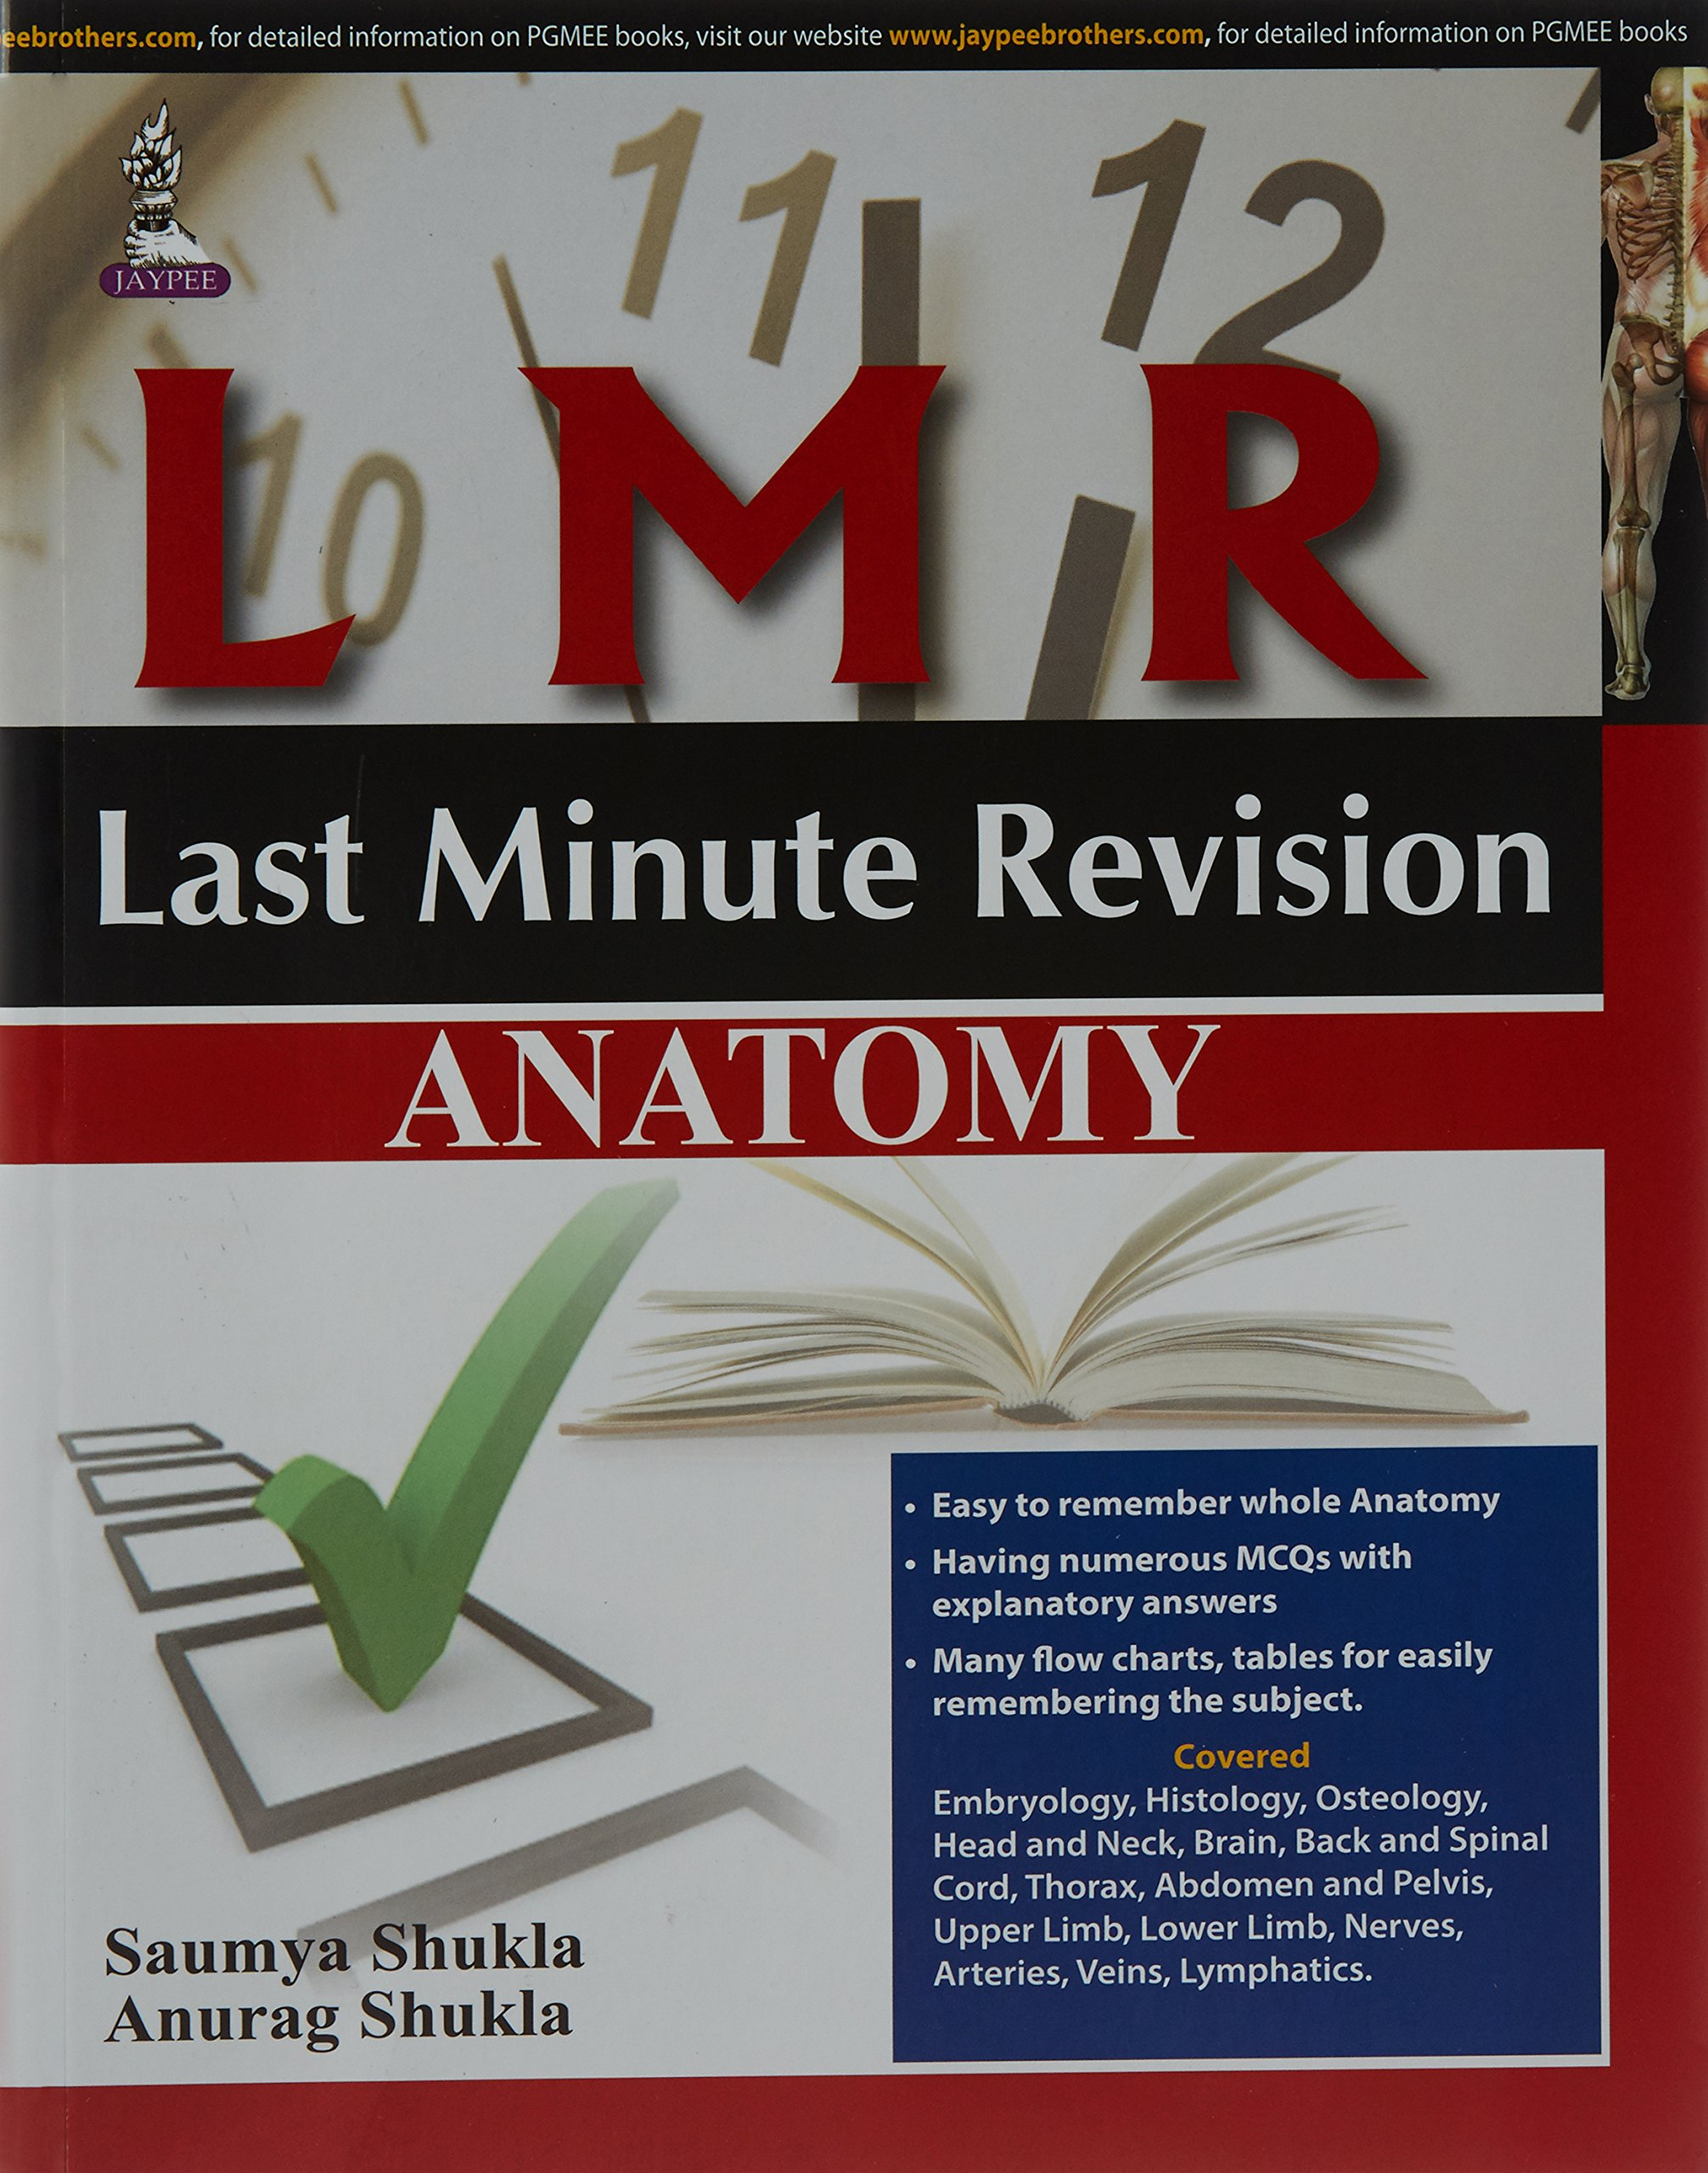 Buy Lmr:Last Minute Revision Anatomy Book Online at Low Prices in ...